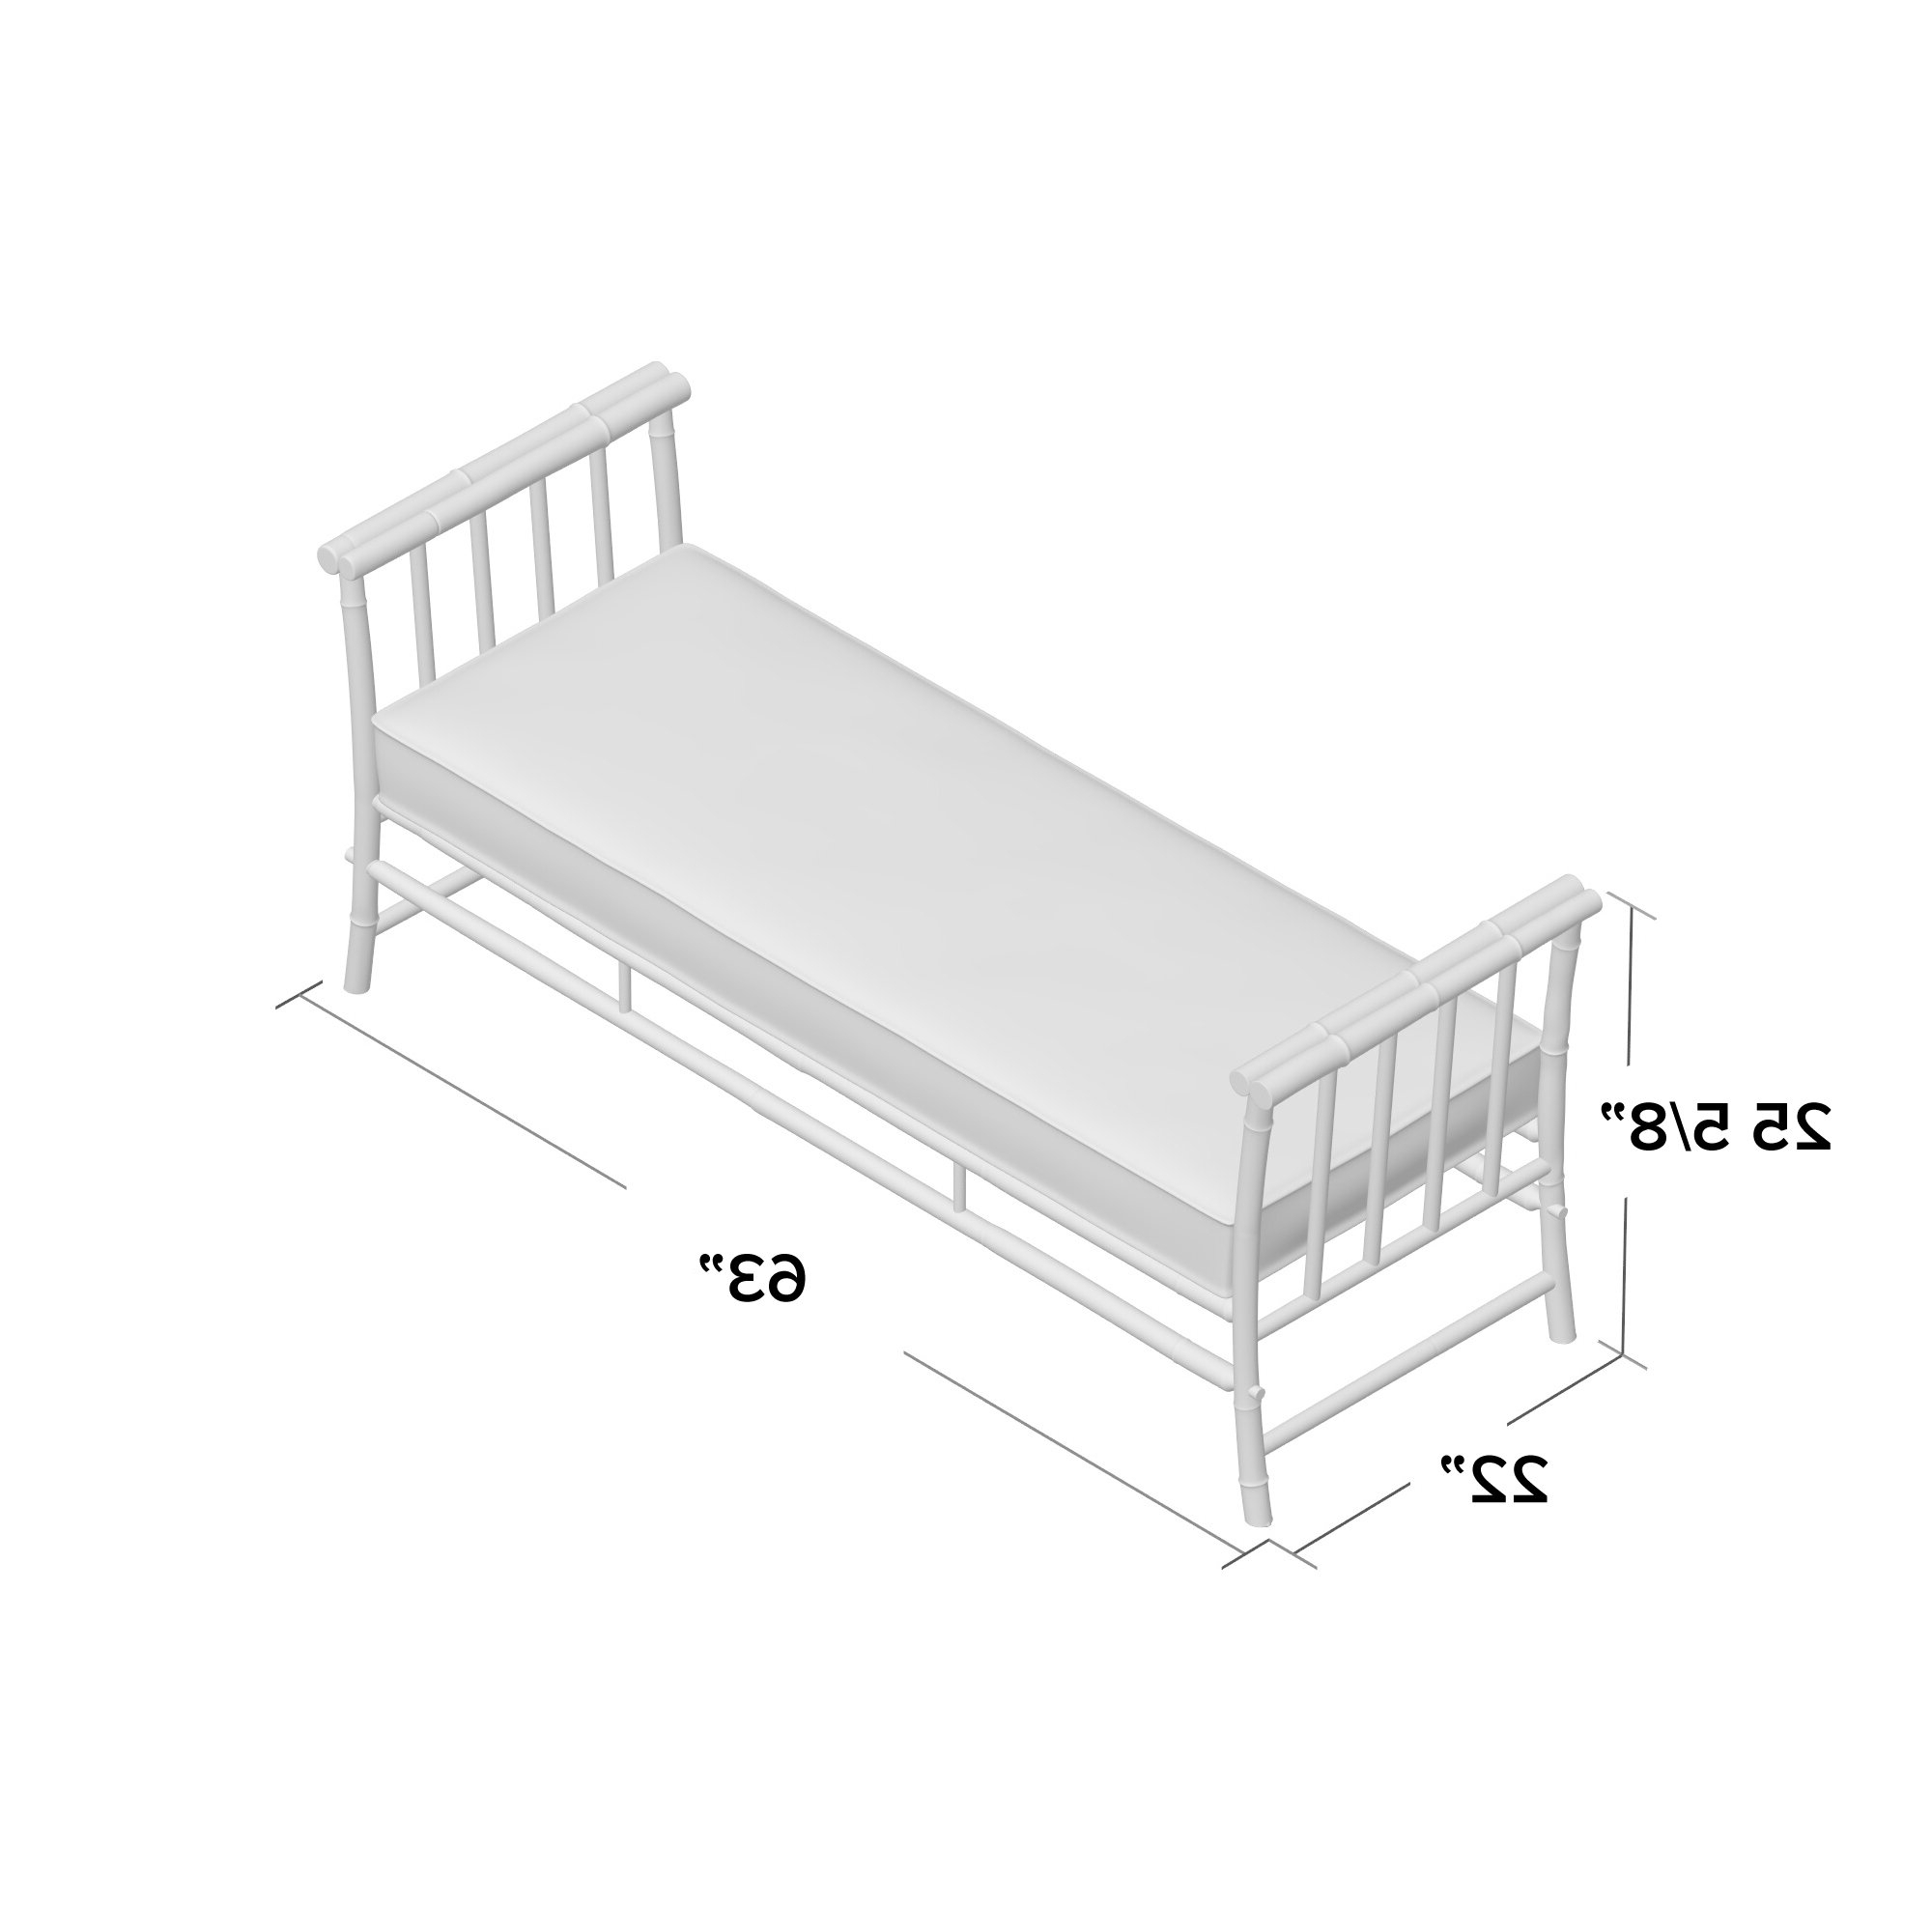 Grosvenor Bamboo Patio Daybeds With Cushions Regarding 2019 Grosvenor Bamboo Patio Daybed With Cushions (View 6 of 20)